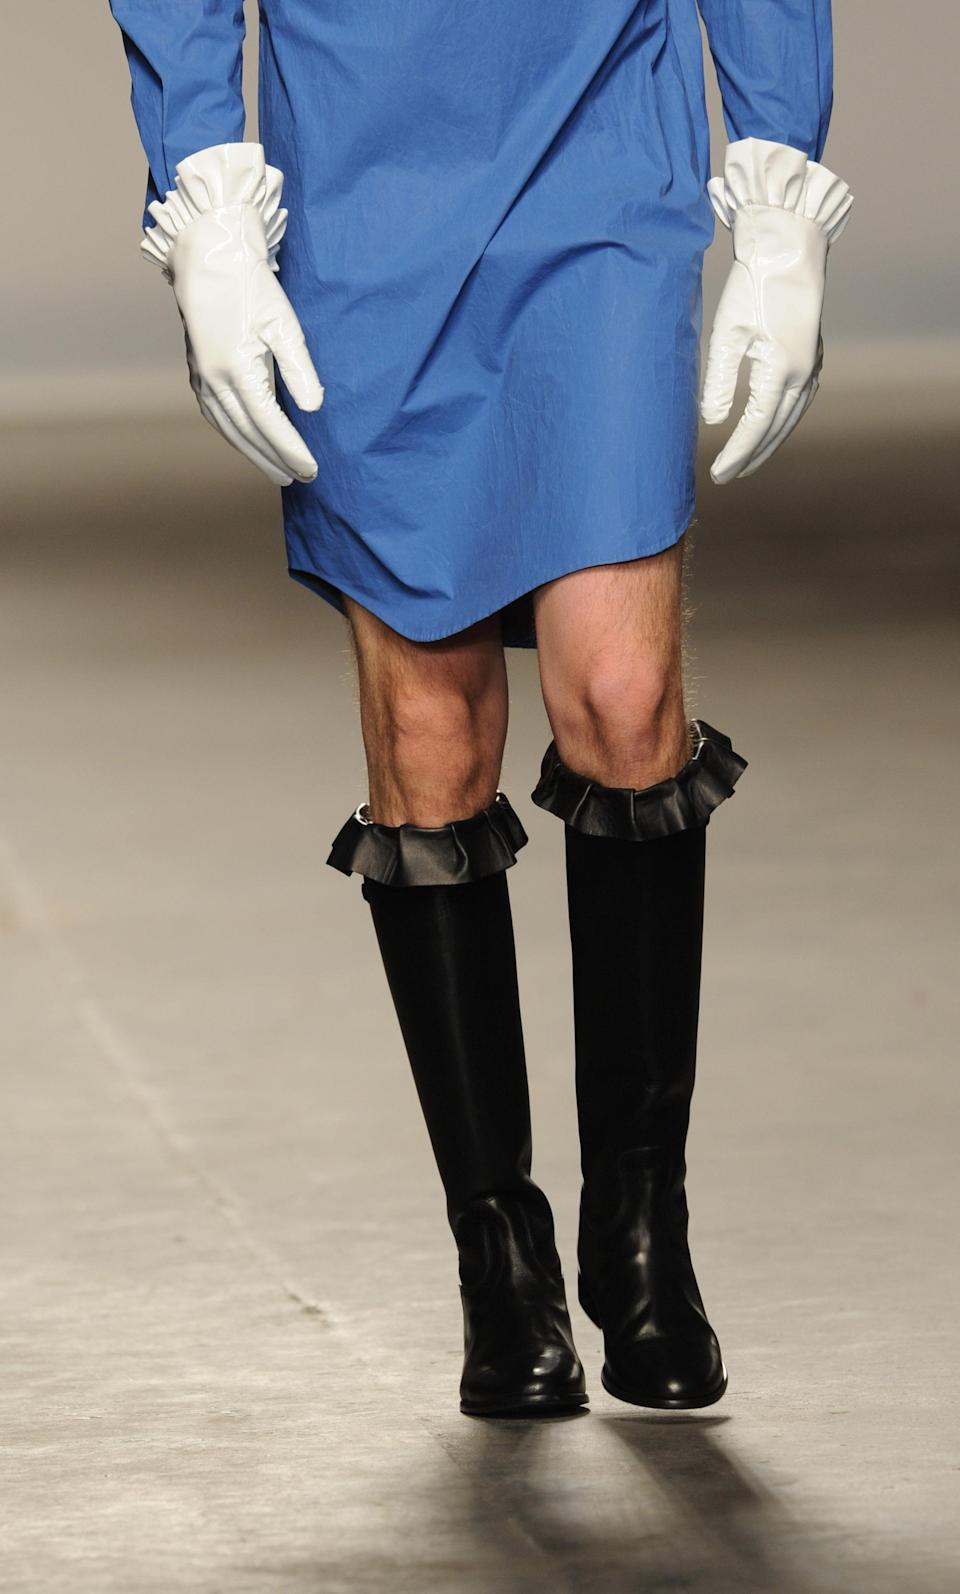 """<div class=""""caption-credit"""">Photo by: Stuart Wilson/Getty Images</div>The JW Anderson Ready to Wear collection sent grown men down the runway in scalloped mini-skirts, shirt-dresses, frilly boots, and the kinds of gloves only a 17th century serial killer could wear inconspicuously. <br>"""